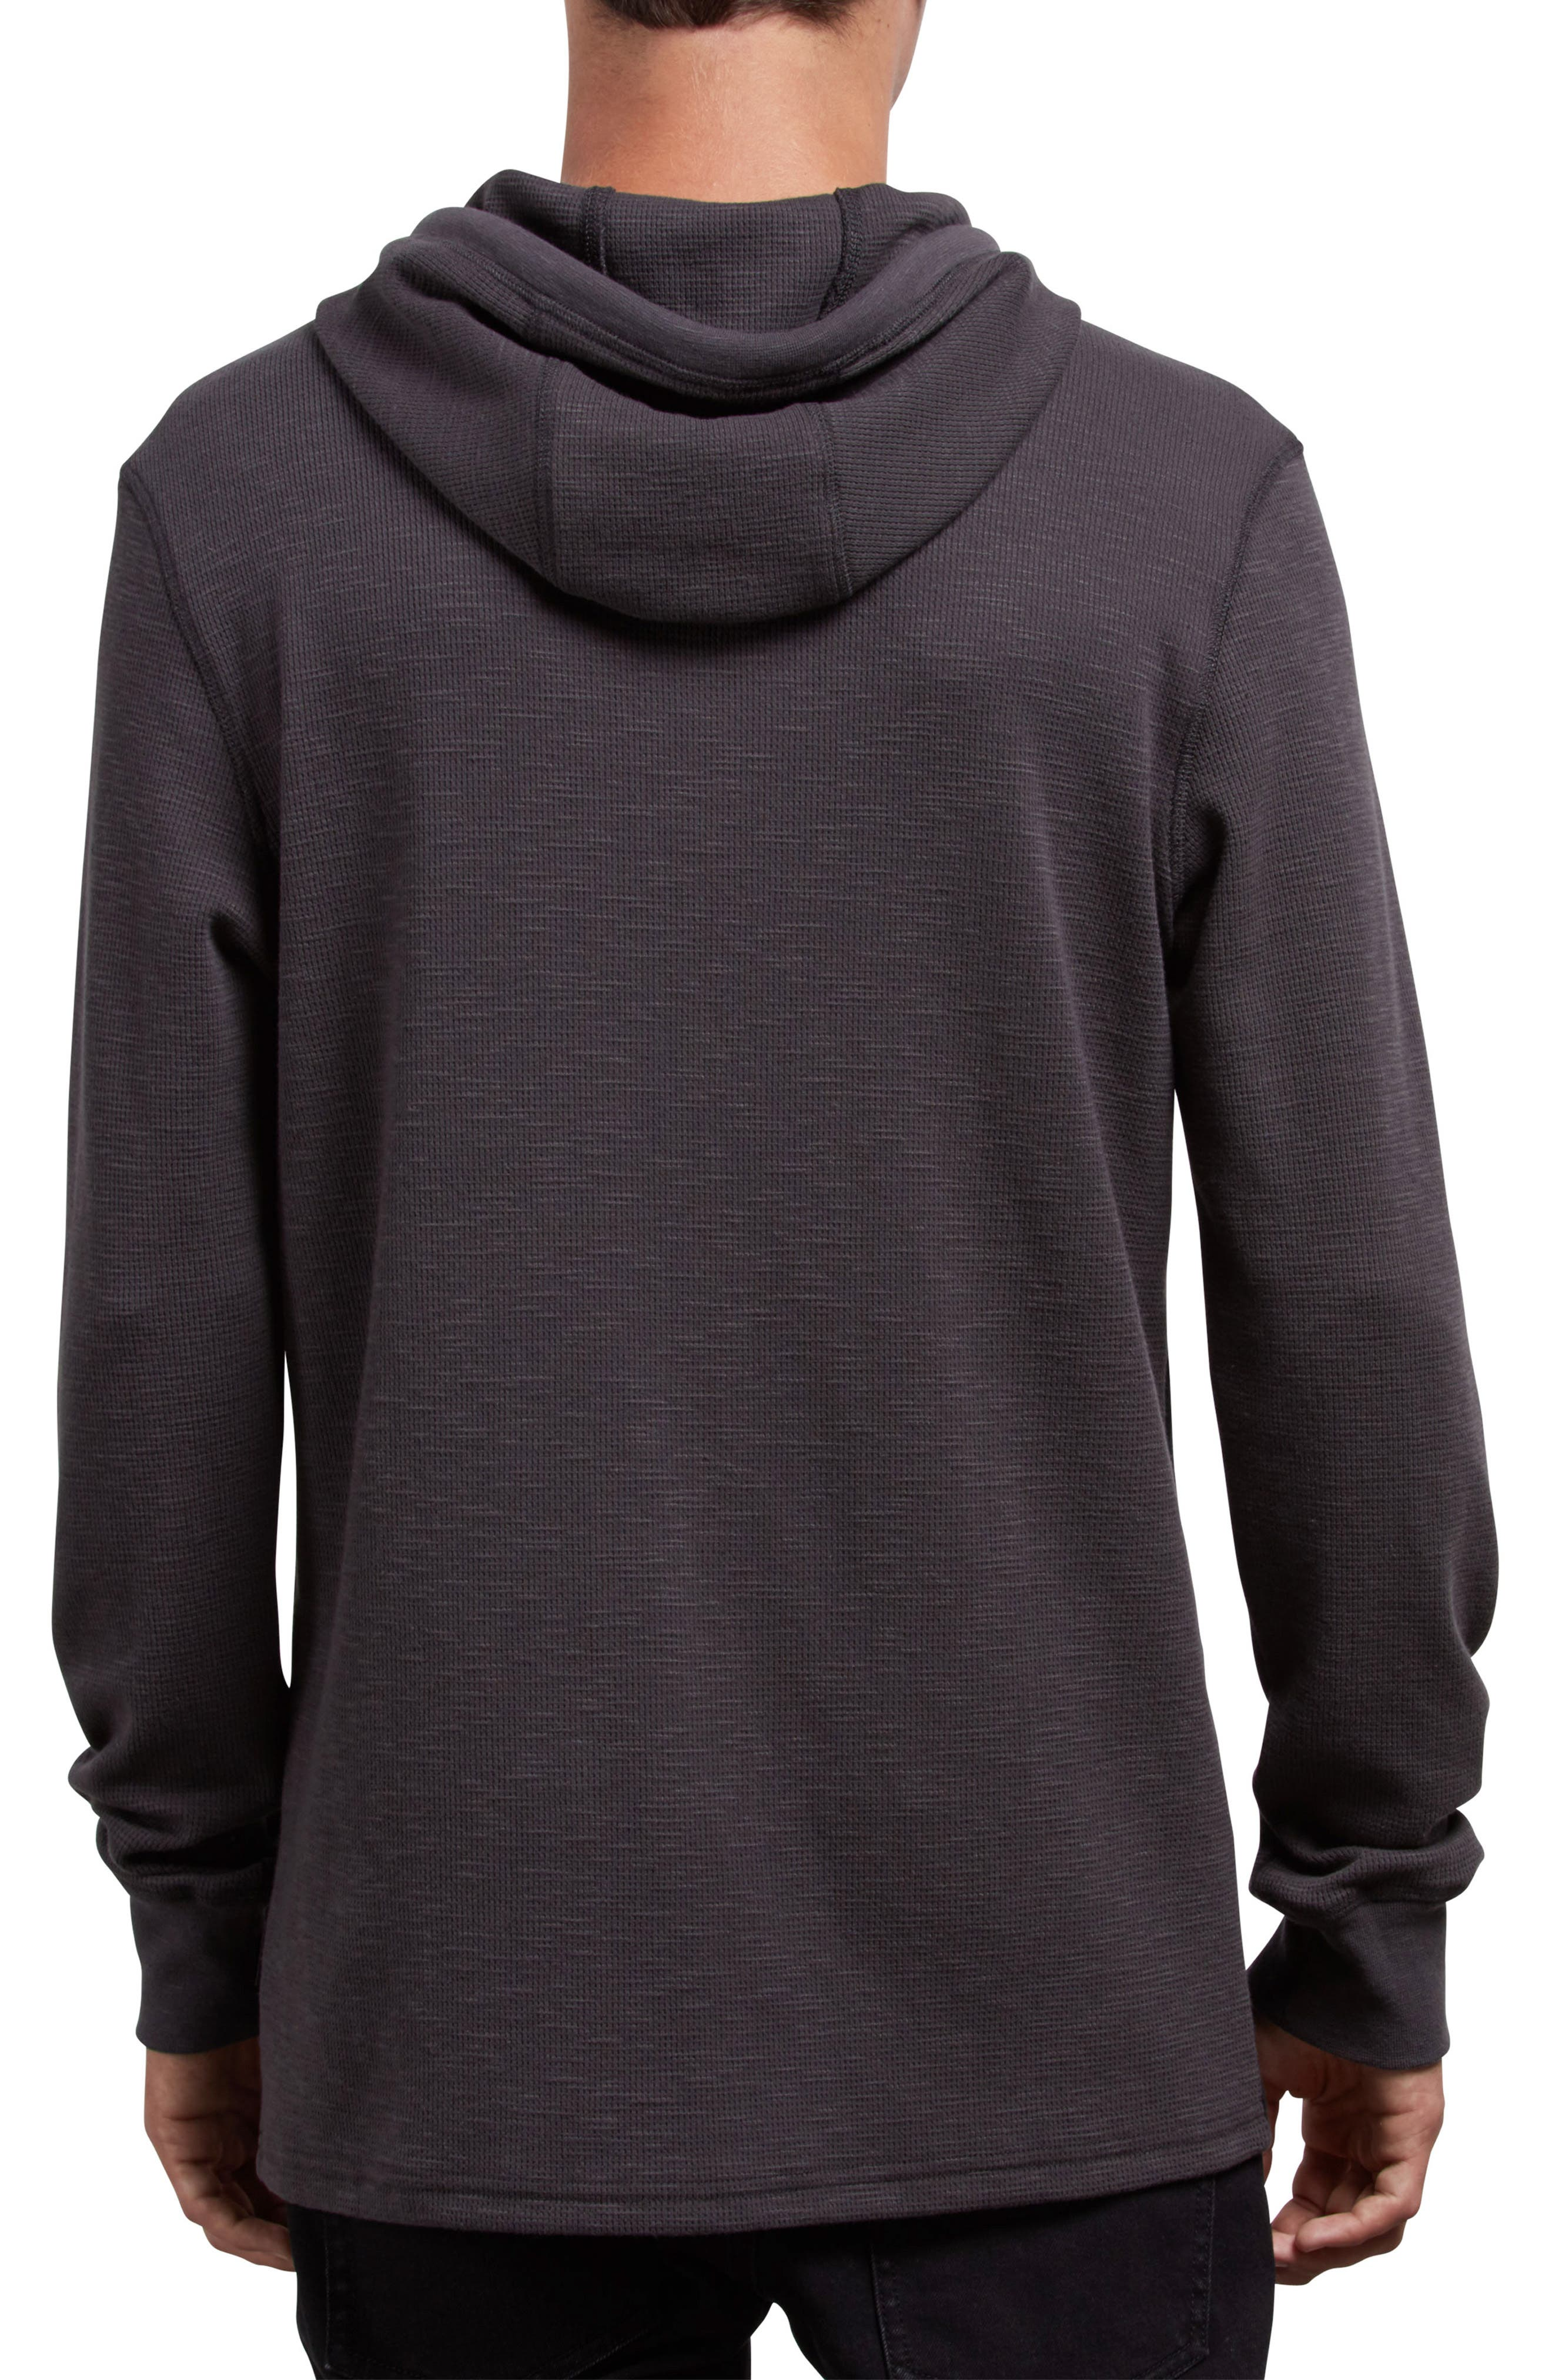 Murphy Thermal Henley Hoodie,                             Alternate thumbnail 2, color,                             ASPHALT BLACK